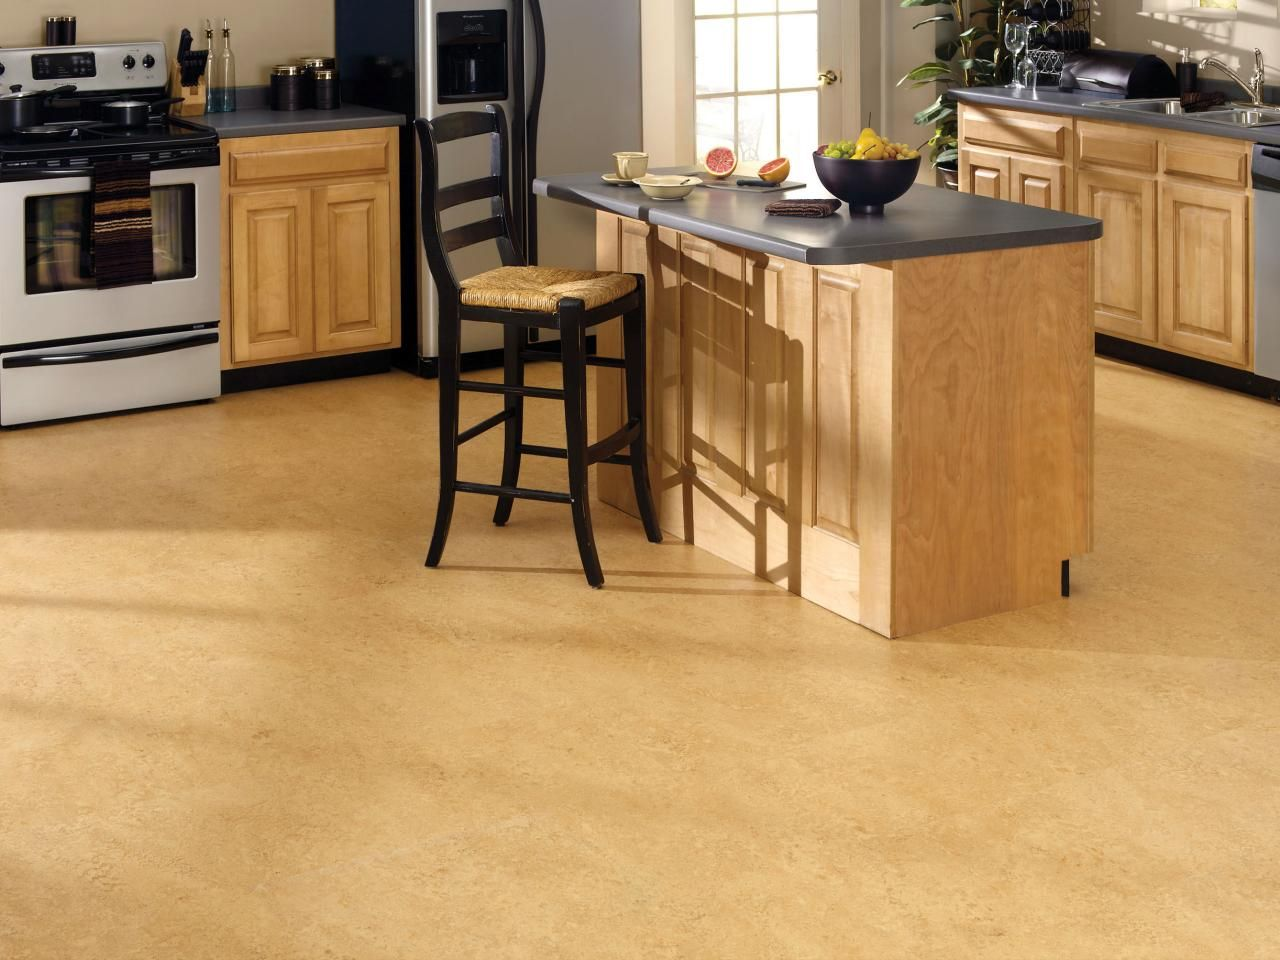 Eco Friendly Kitchen Flooring Corkoleum Flooring Is An Eco Friendly Linoleum Made From Non Toxic